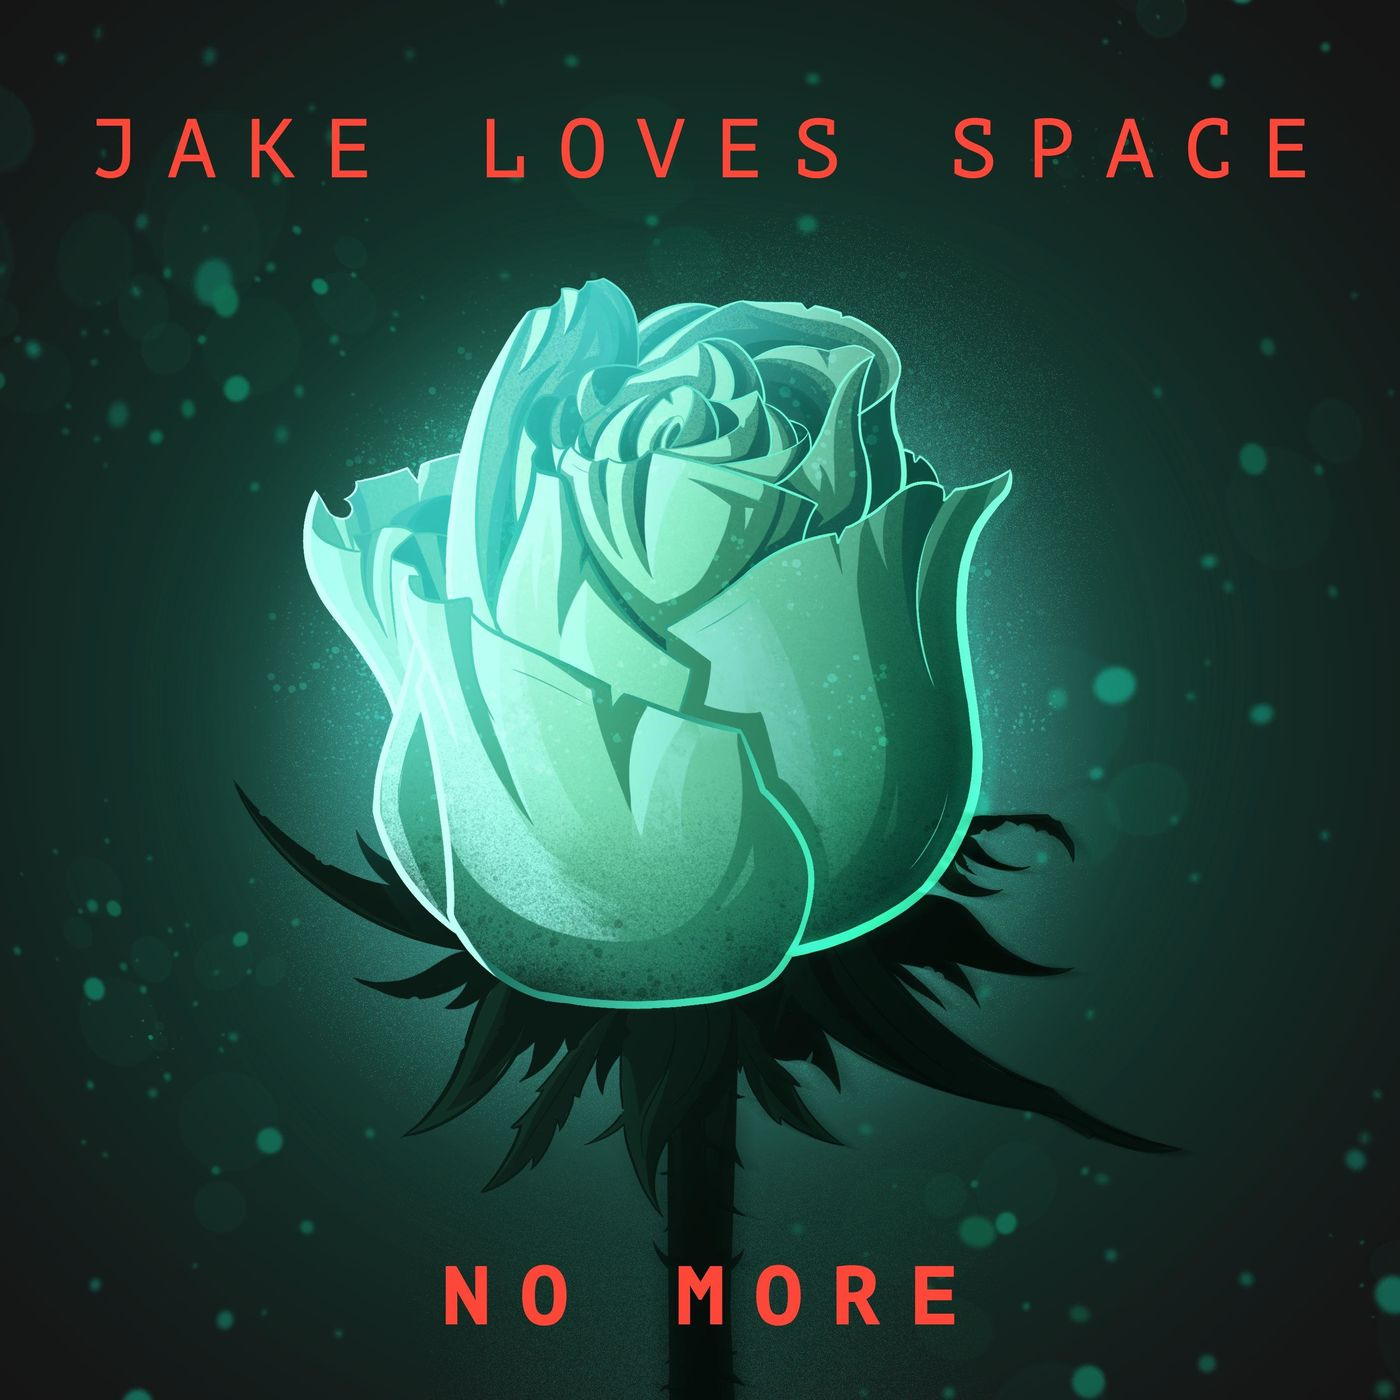 Jake Loves Space - No More [single] (2021)